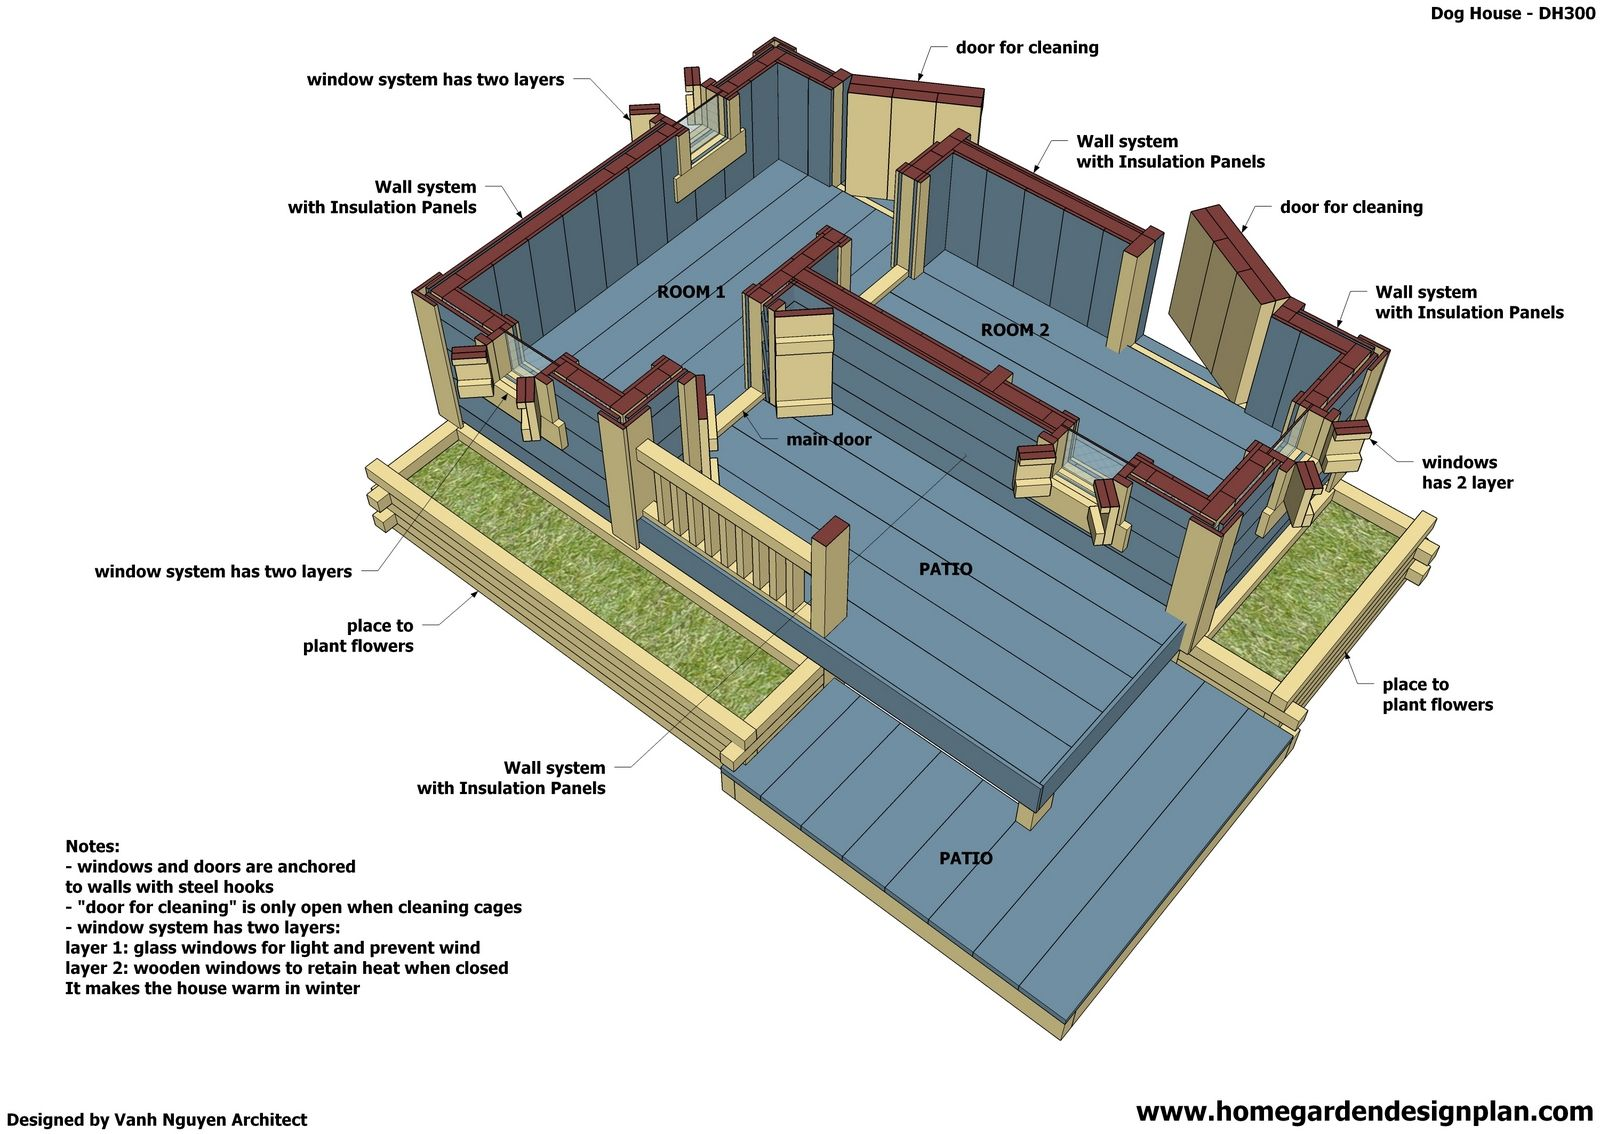 Home Garden Plans: DH300   Dog House Plans Free   How To Build An Insulated